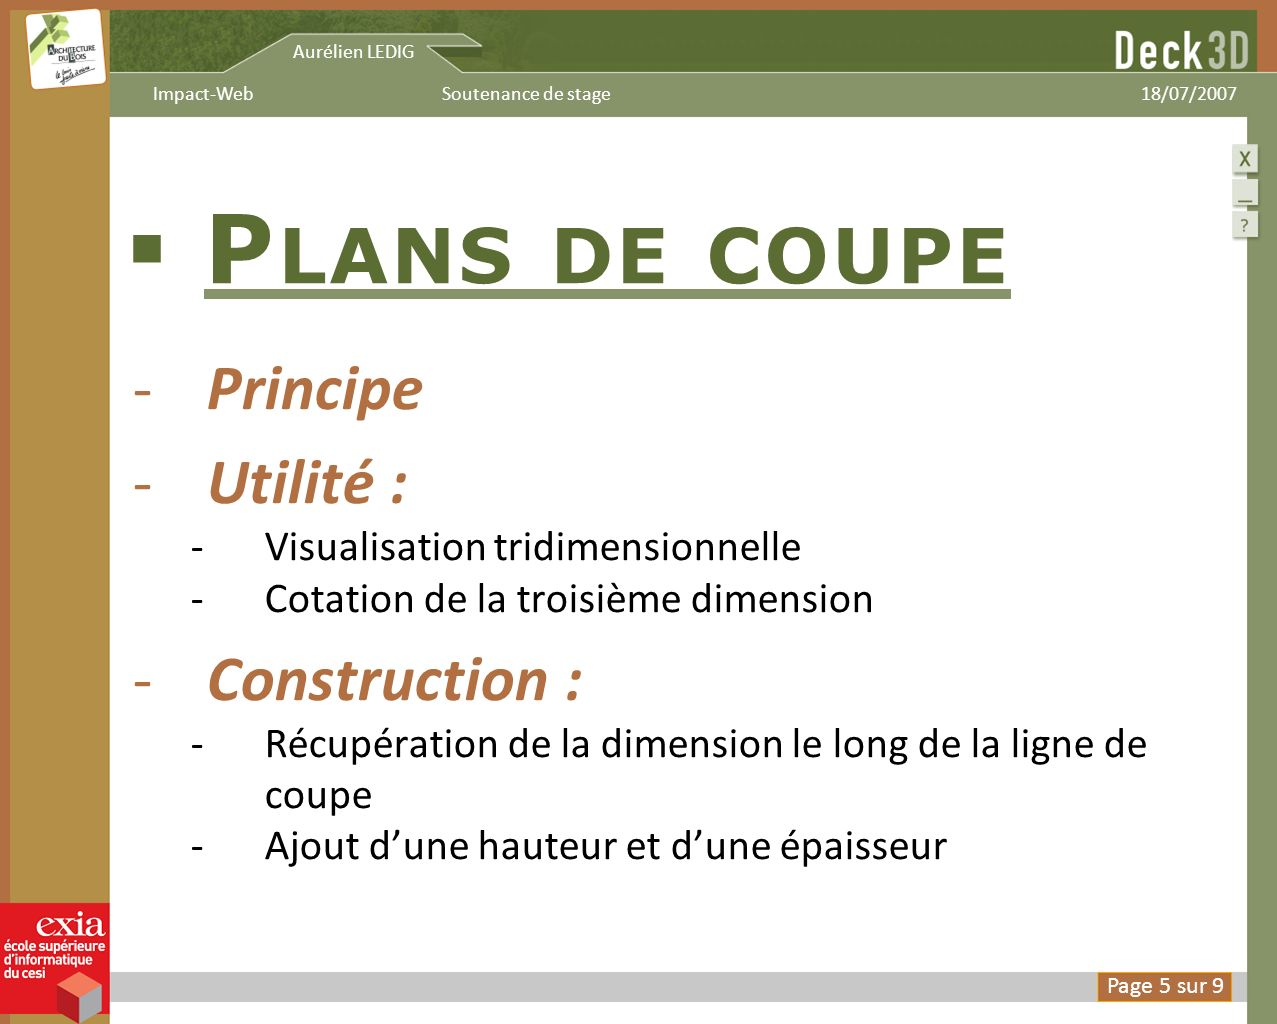 Plans de coupe Principe Utilité : Construction :